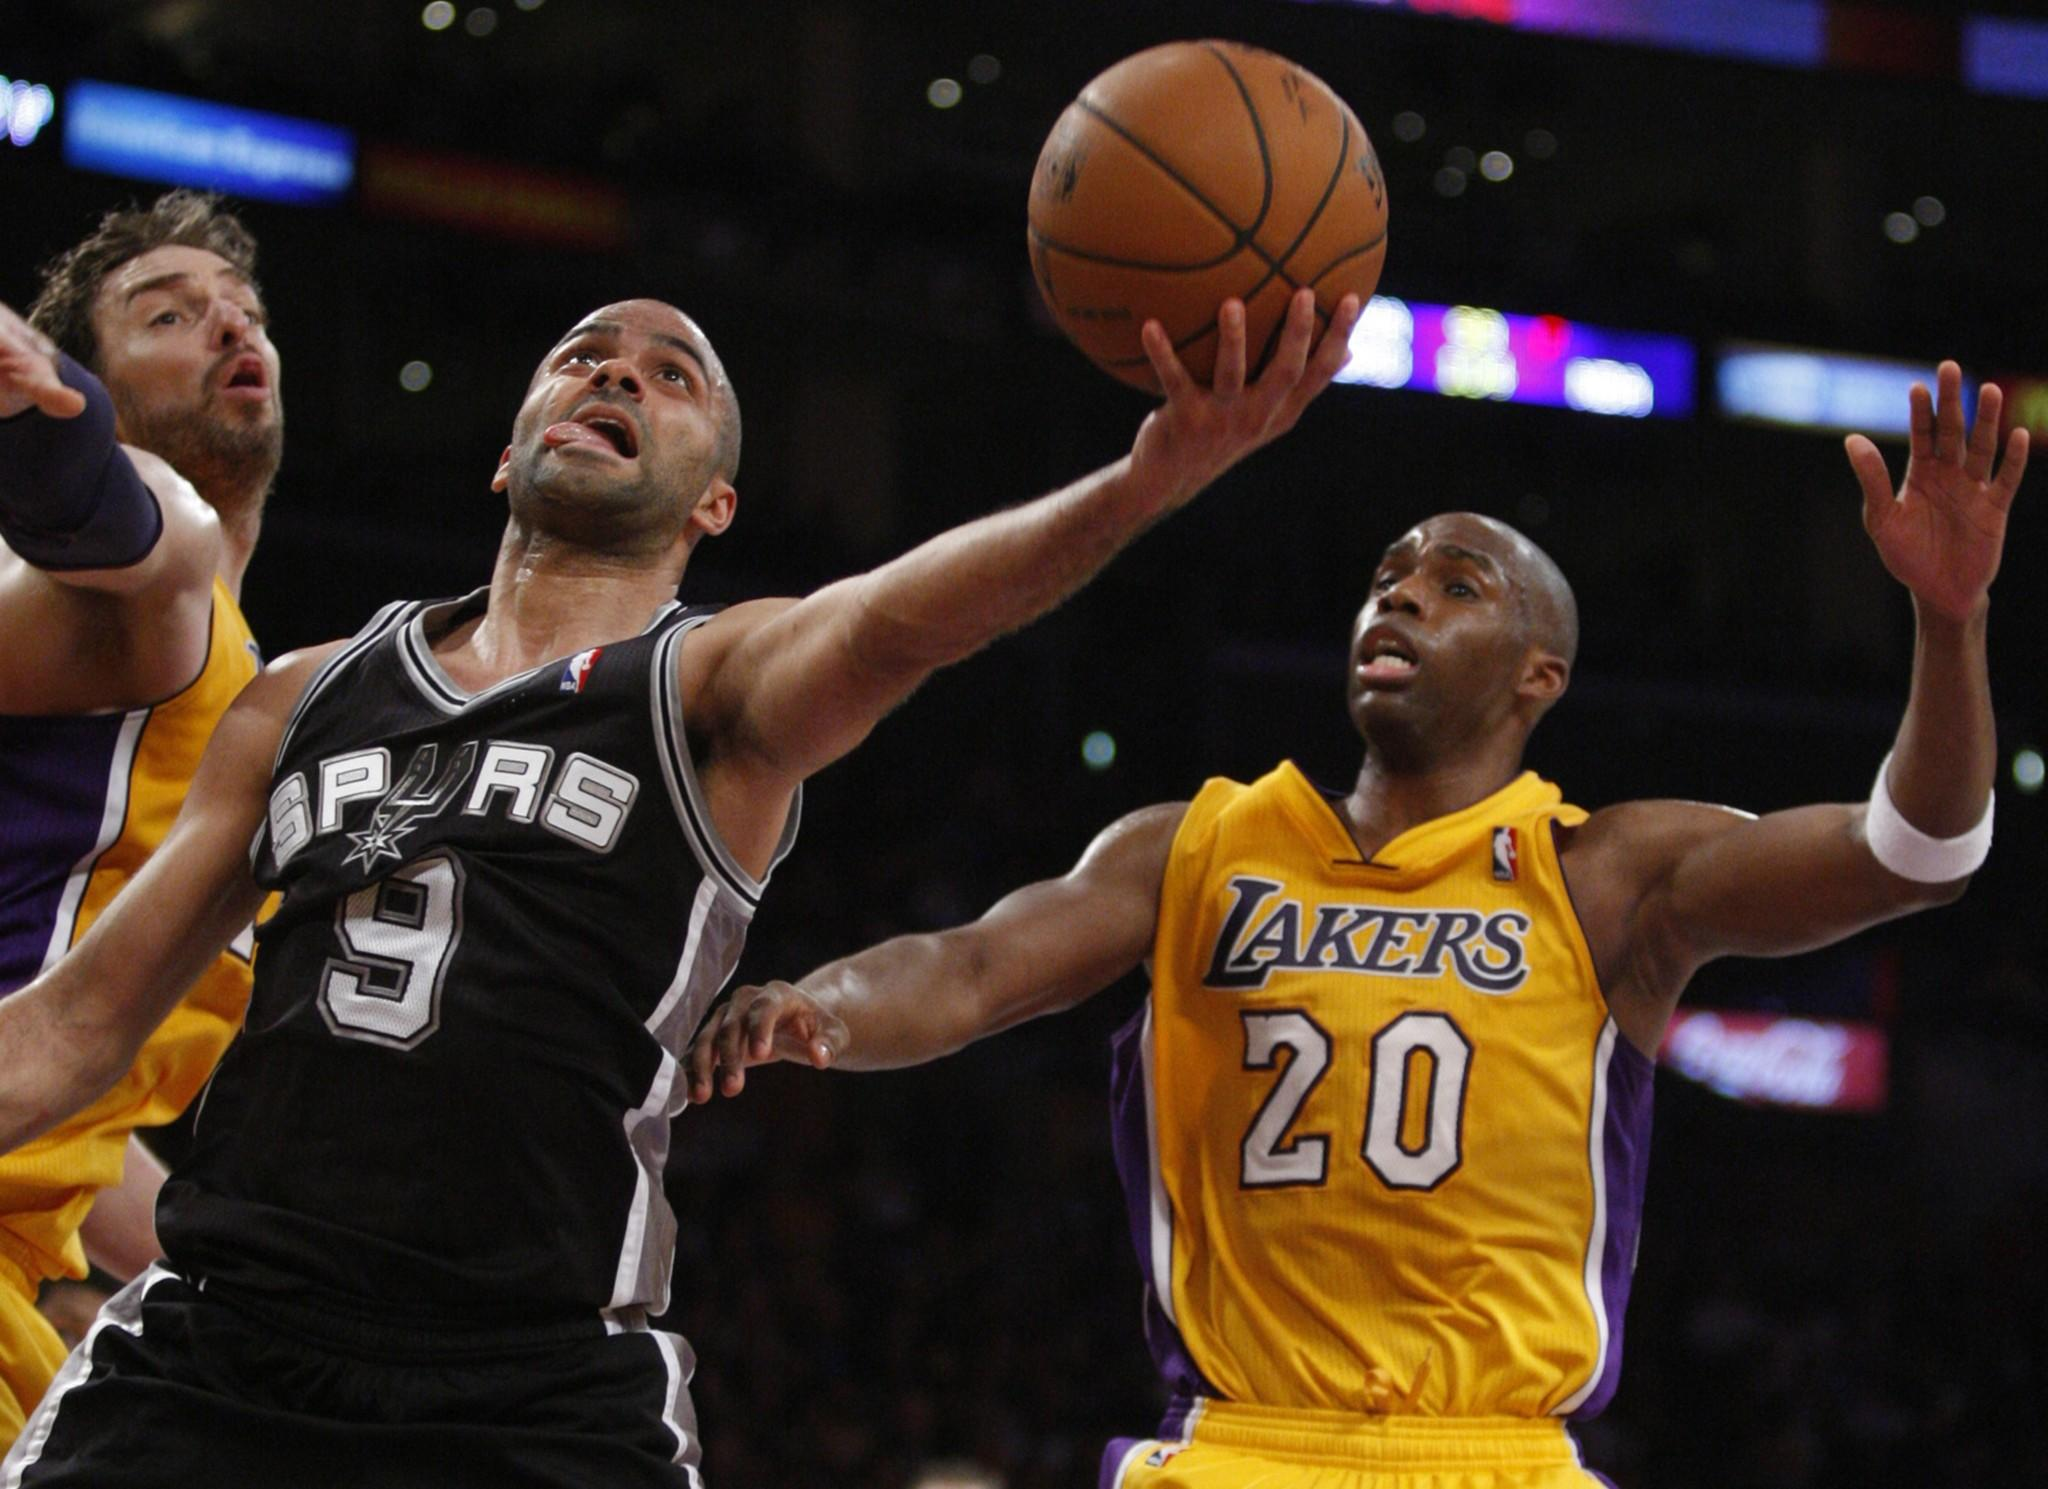 Spurs point guard Tony Parker gets past Lakers power forward Pau Gasol, left, and guard Jodie Meeks for a layup.